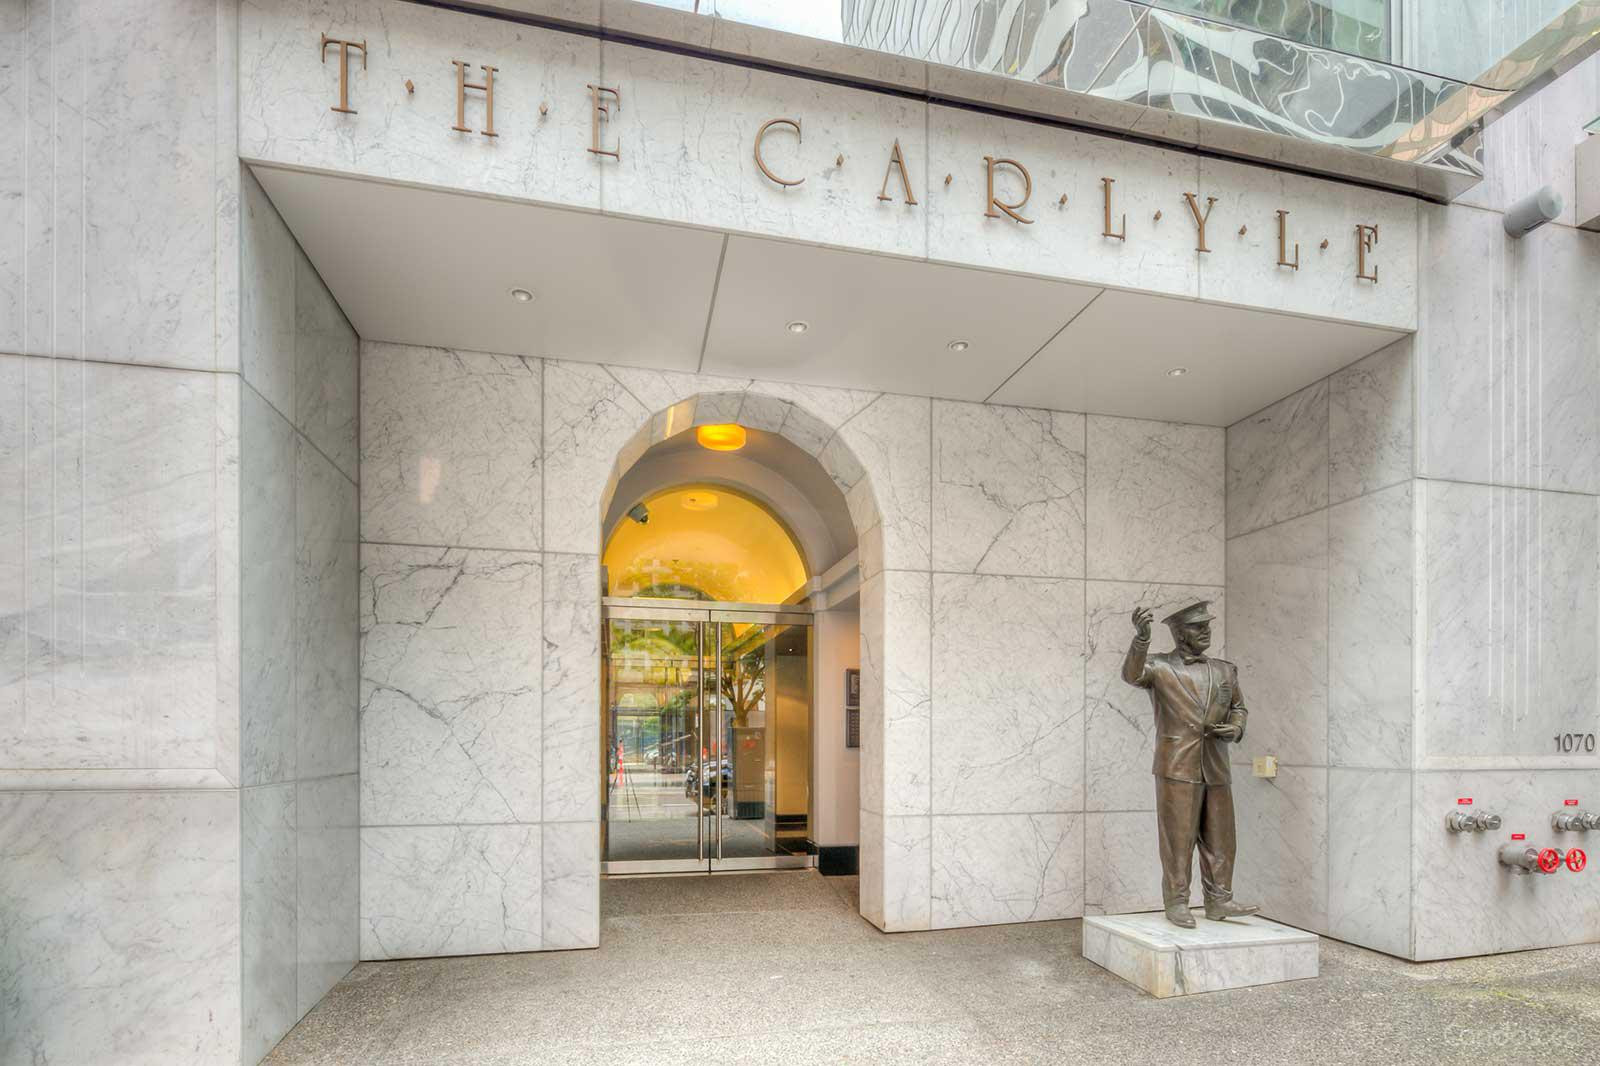 The Carlyle at 1060 Alberni St, Vancouver 0